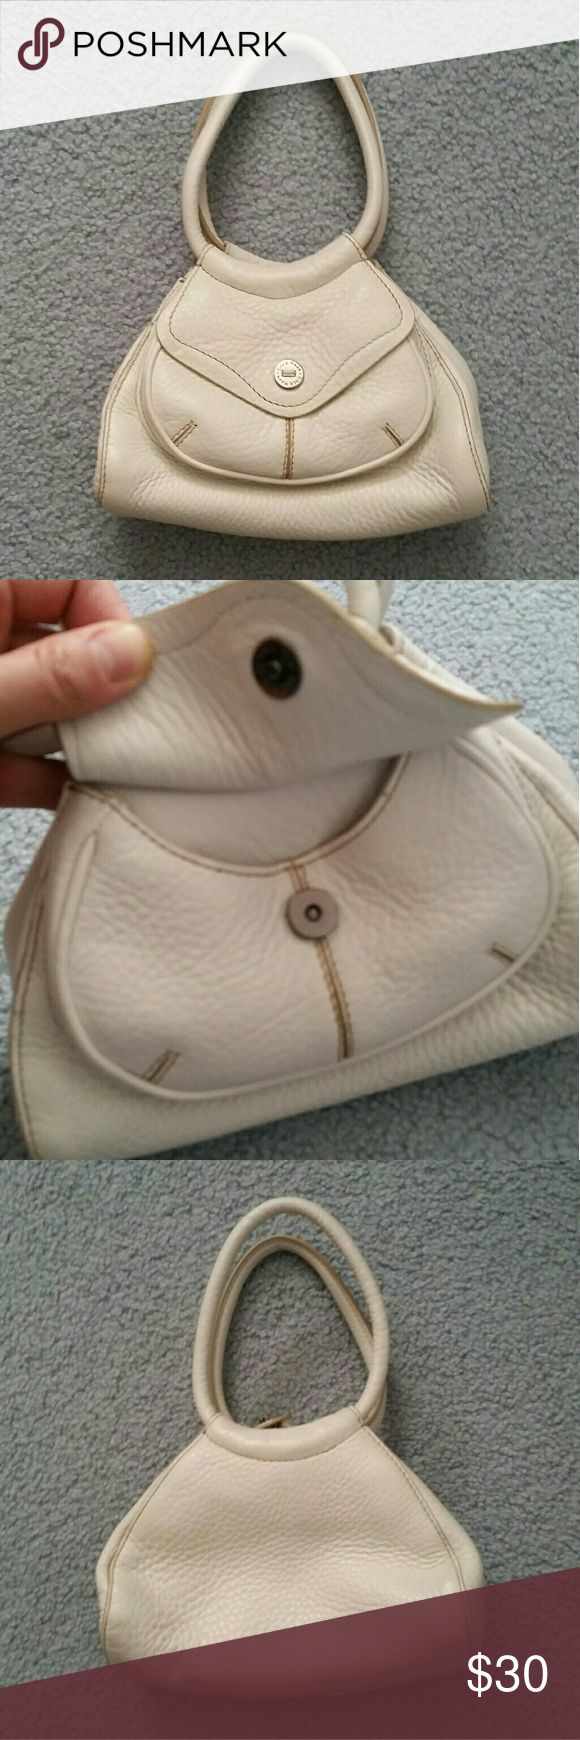 Cole Haan Mini Purse This is a off white pebbled leather purse from Cole Haan. It is very small and can only fit a couple things. It has two handles and a snap in the middle to hold the purse together. It has a small pocket in the front with a flap and a small zipper pocket inside the purse. This purse was only used once or twice and it in great condition. Cole Haan Bags Mini Bags